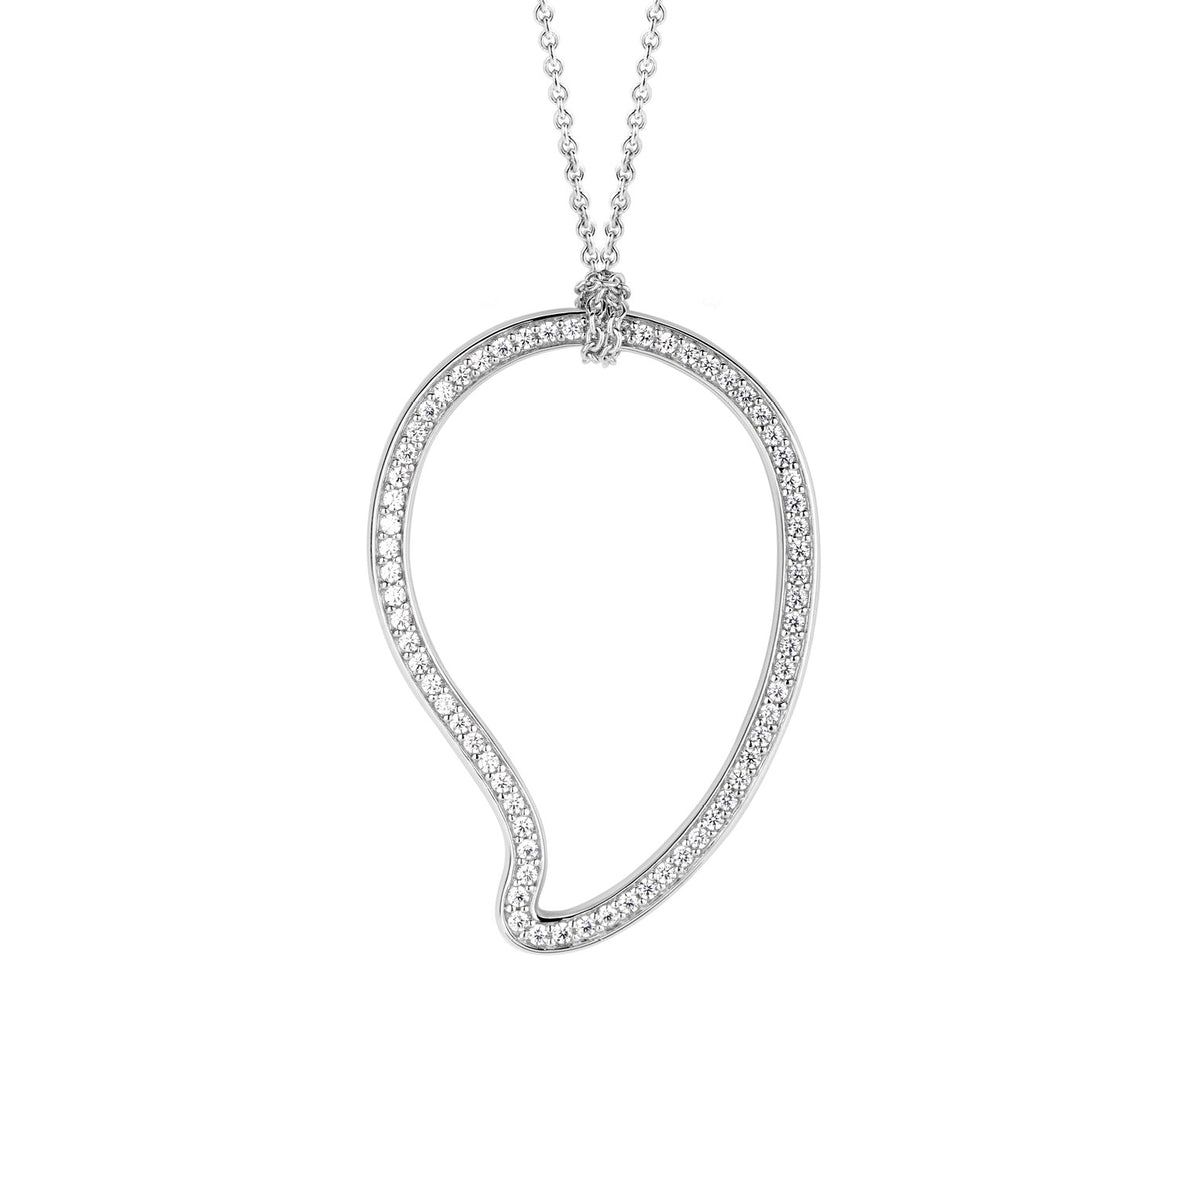 TI SENTO Sterling Silver Necklace with Paisley Pendant